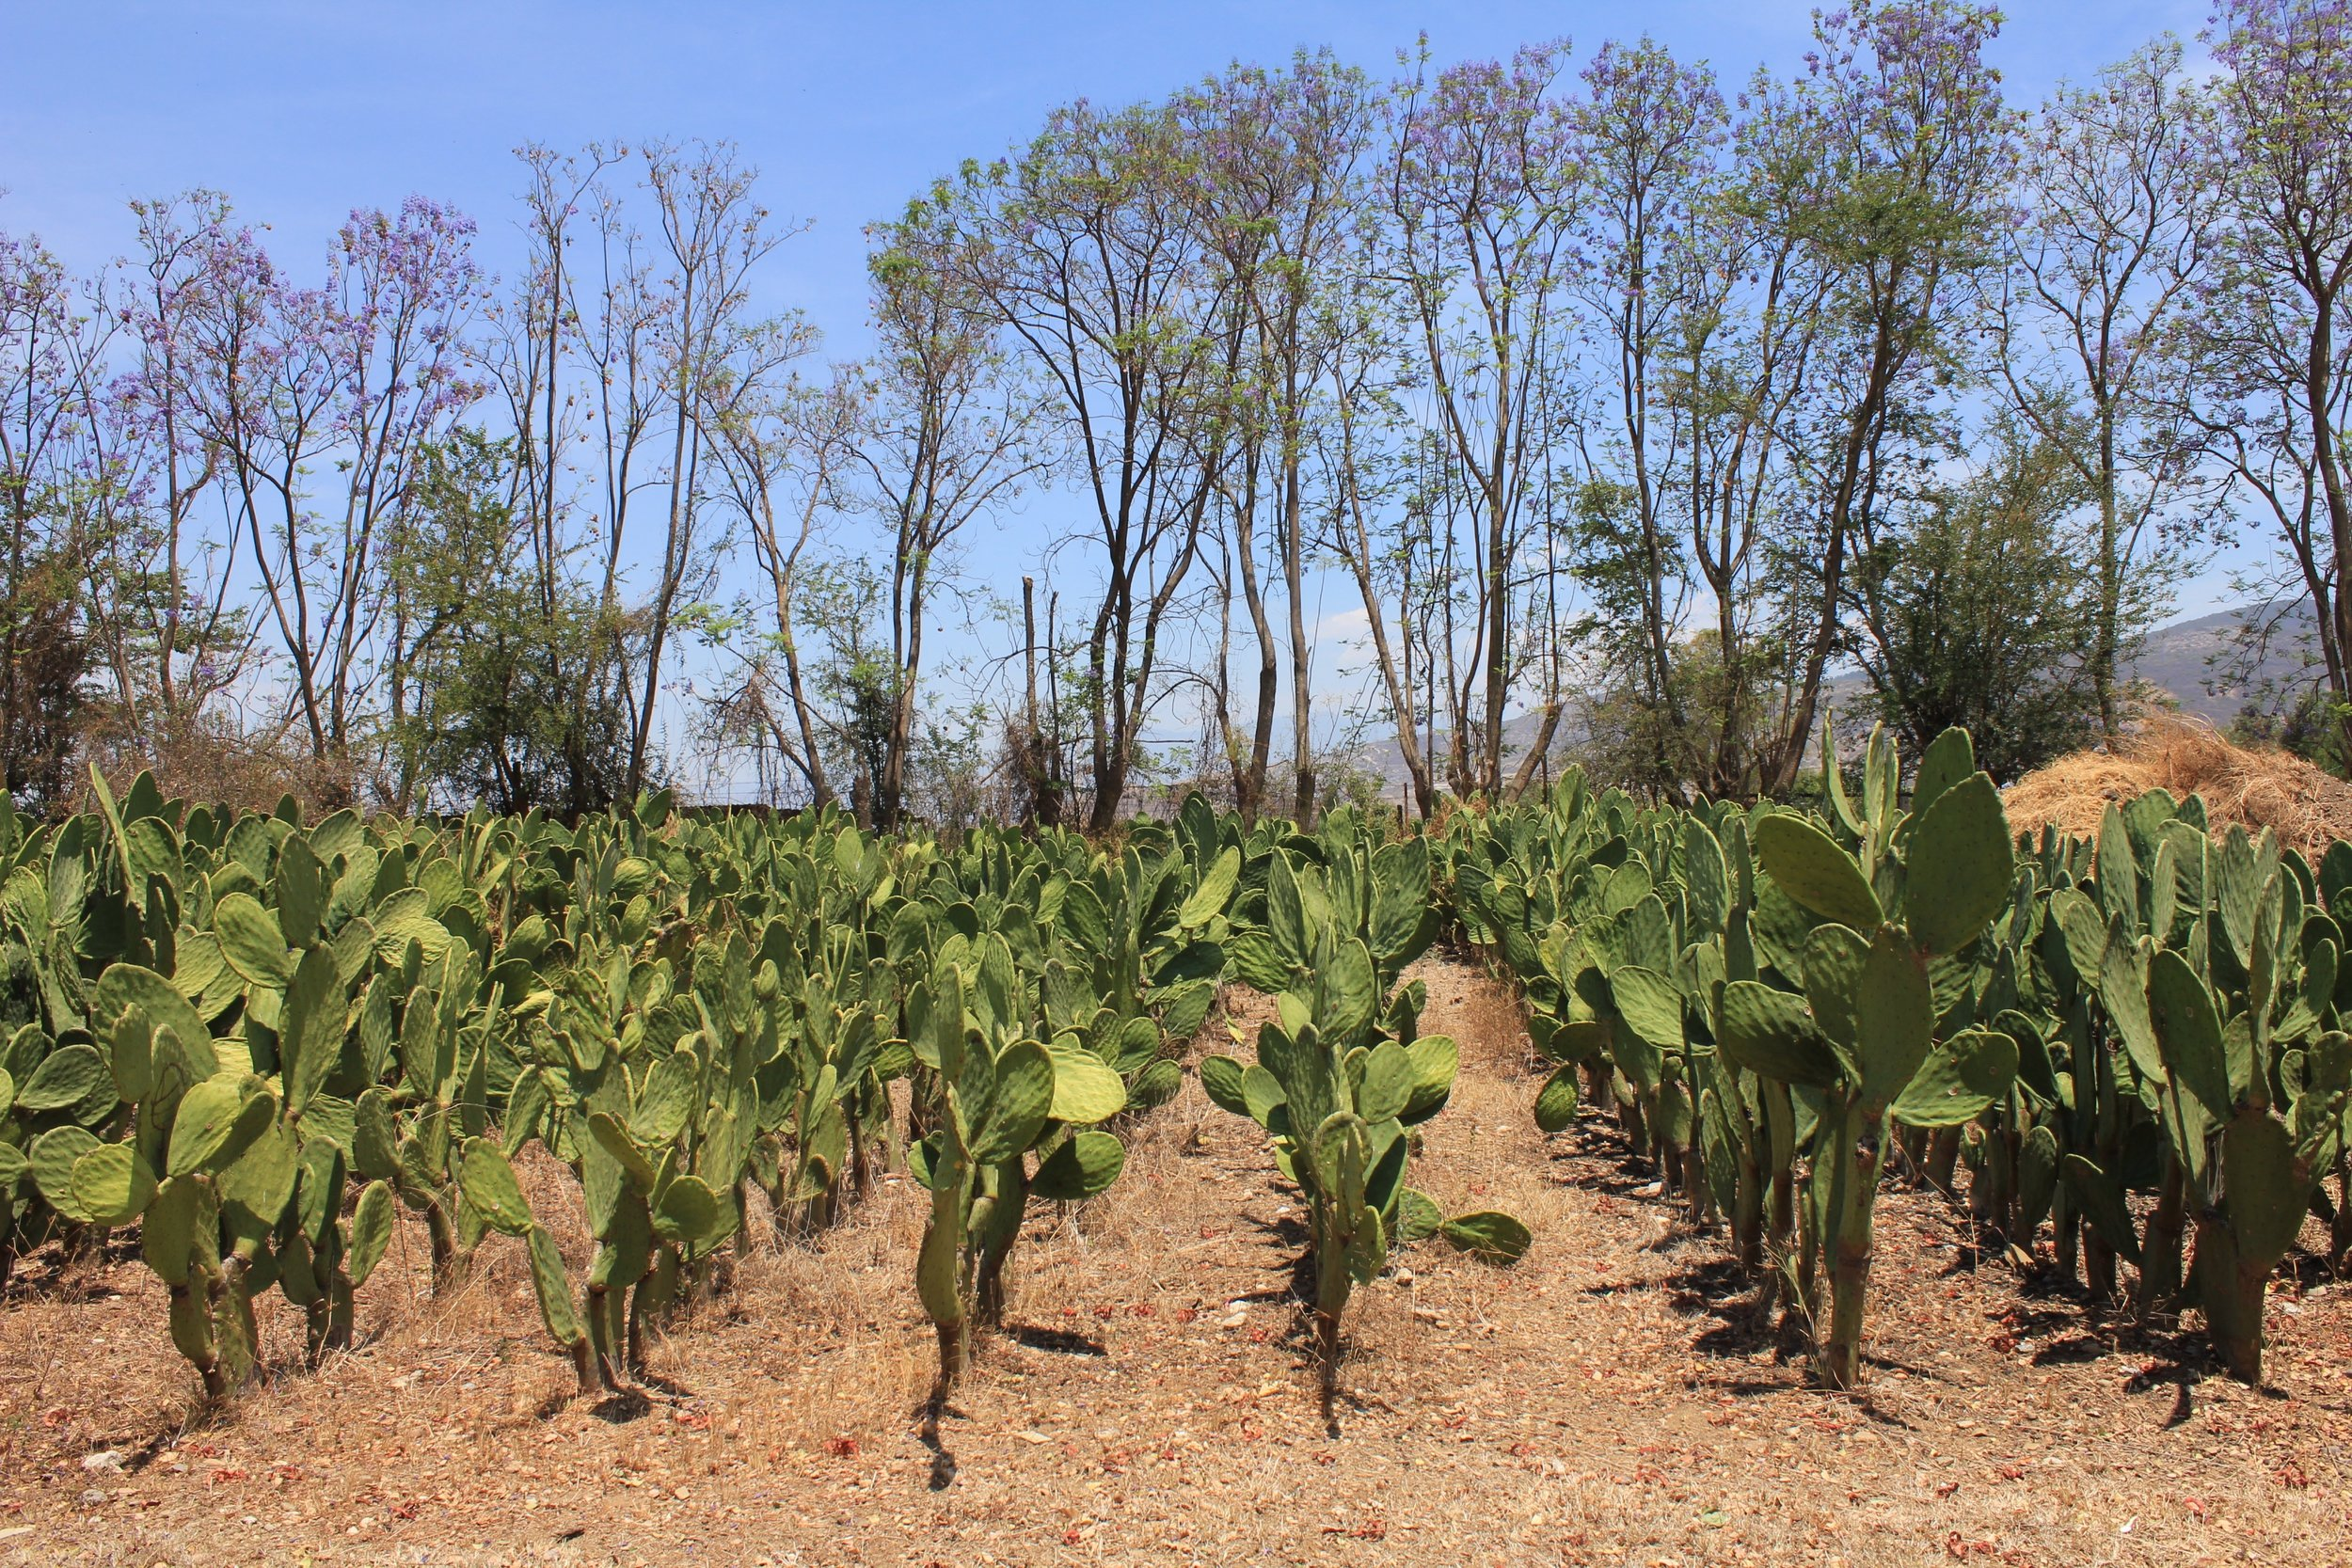 A nopal field in Oaxaca